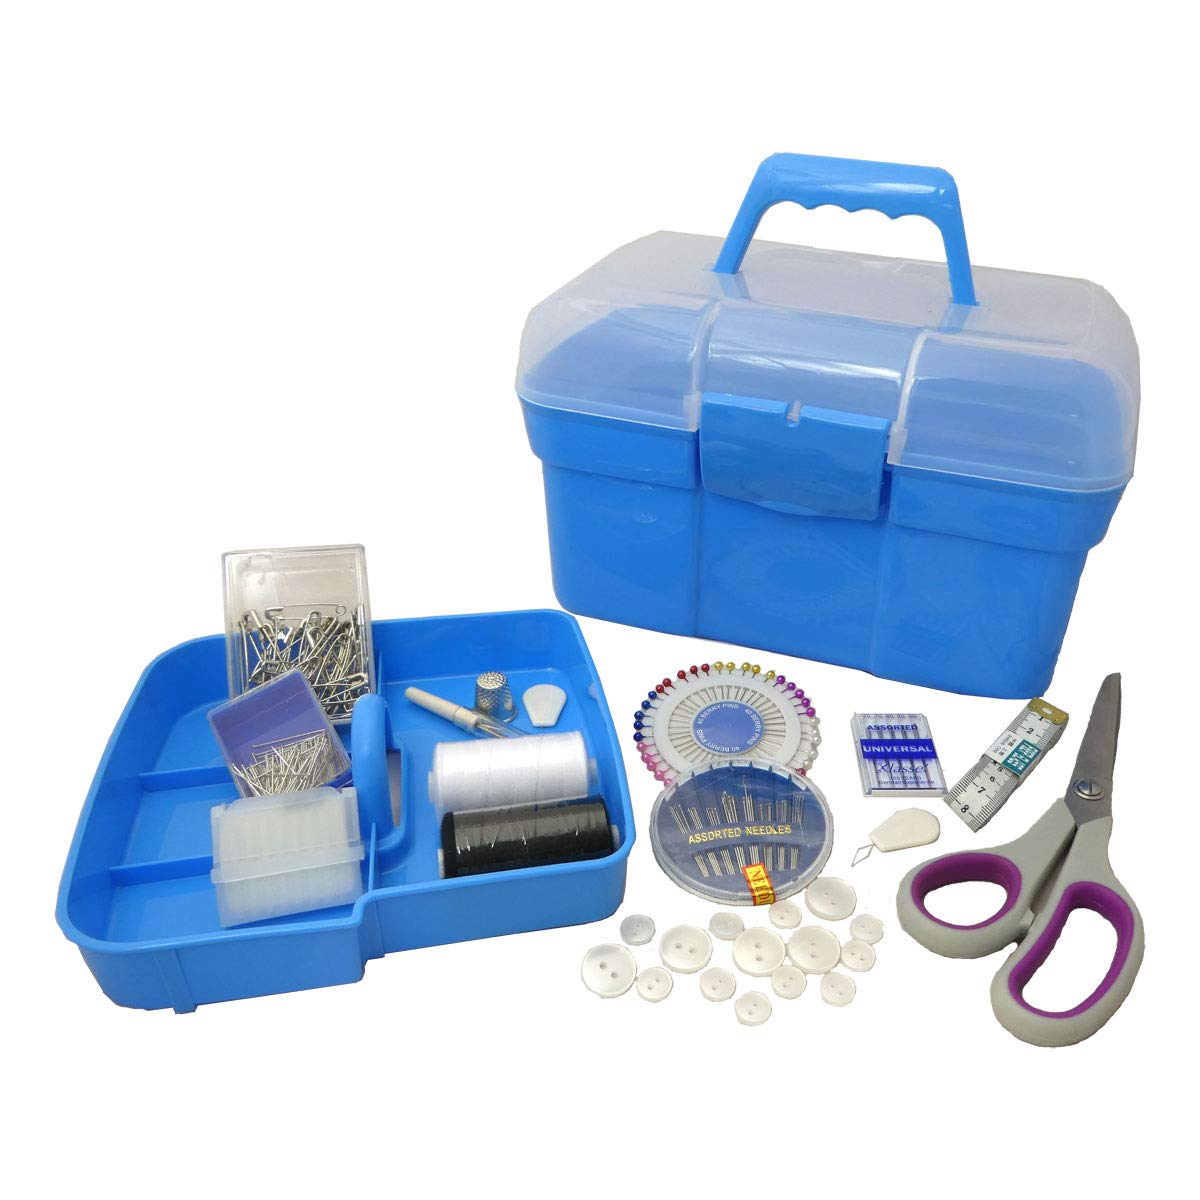 Hemline A2076/G001 | Blue Plastic Deluxe Sewing Kit